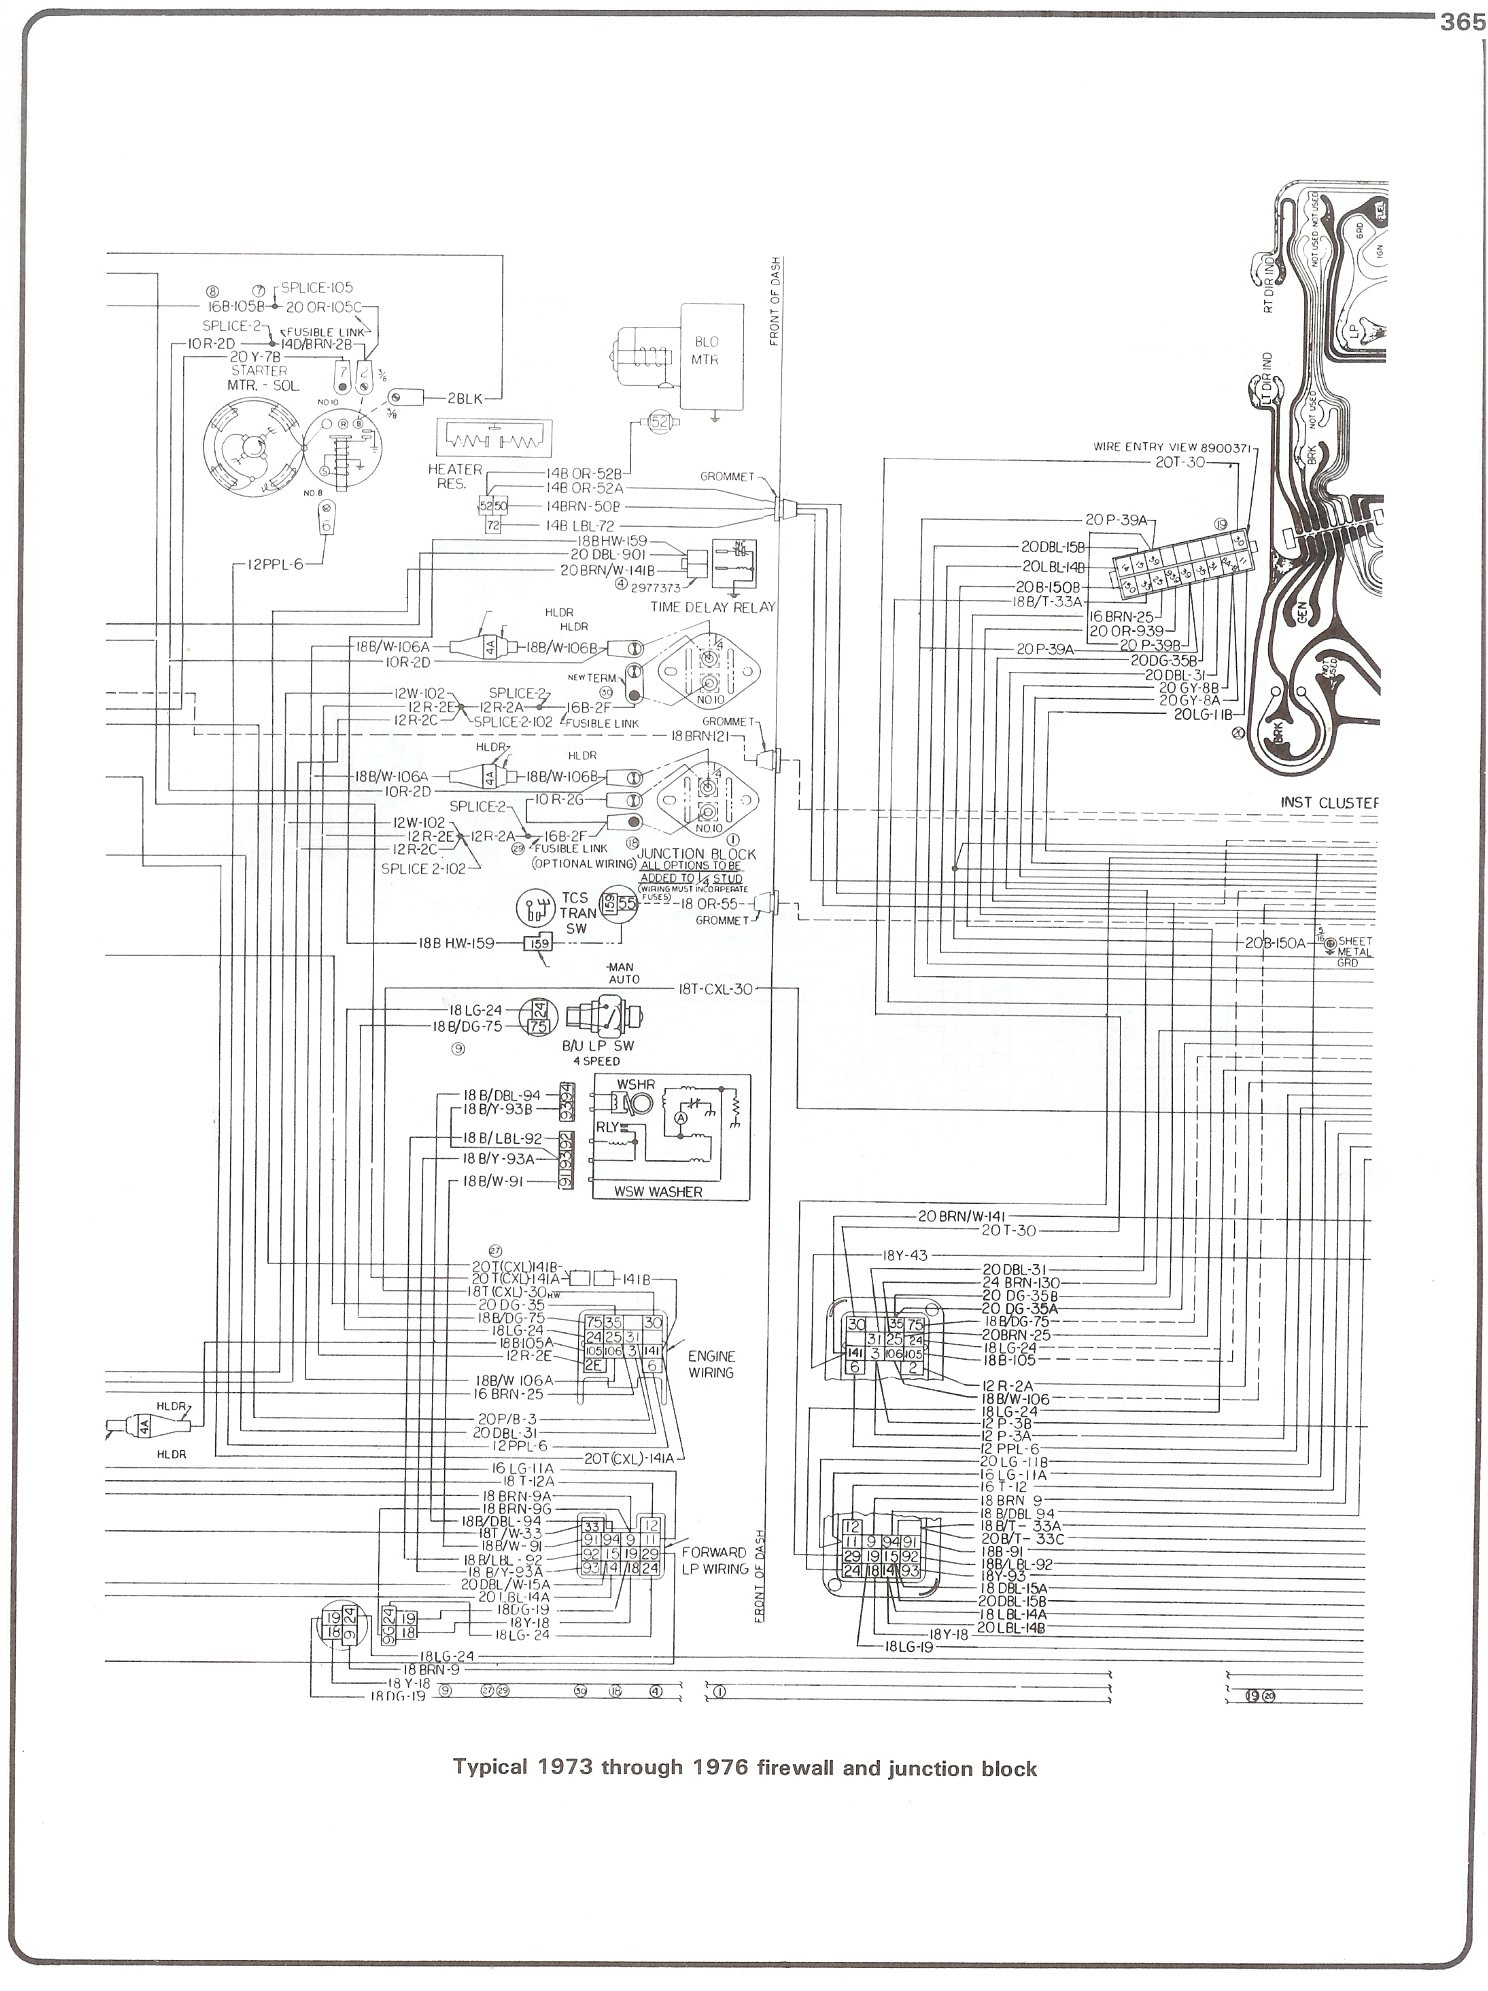 1983 Chevy Truck Fuse Block Diagram Images Gallery